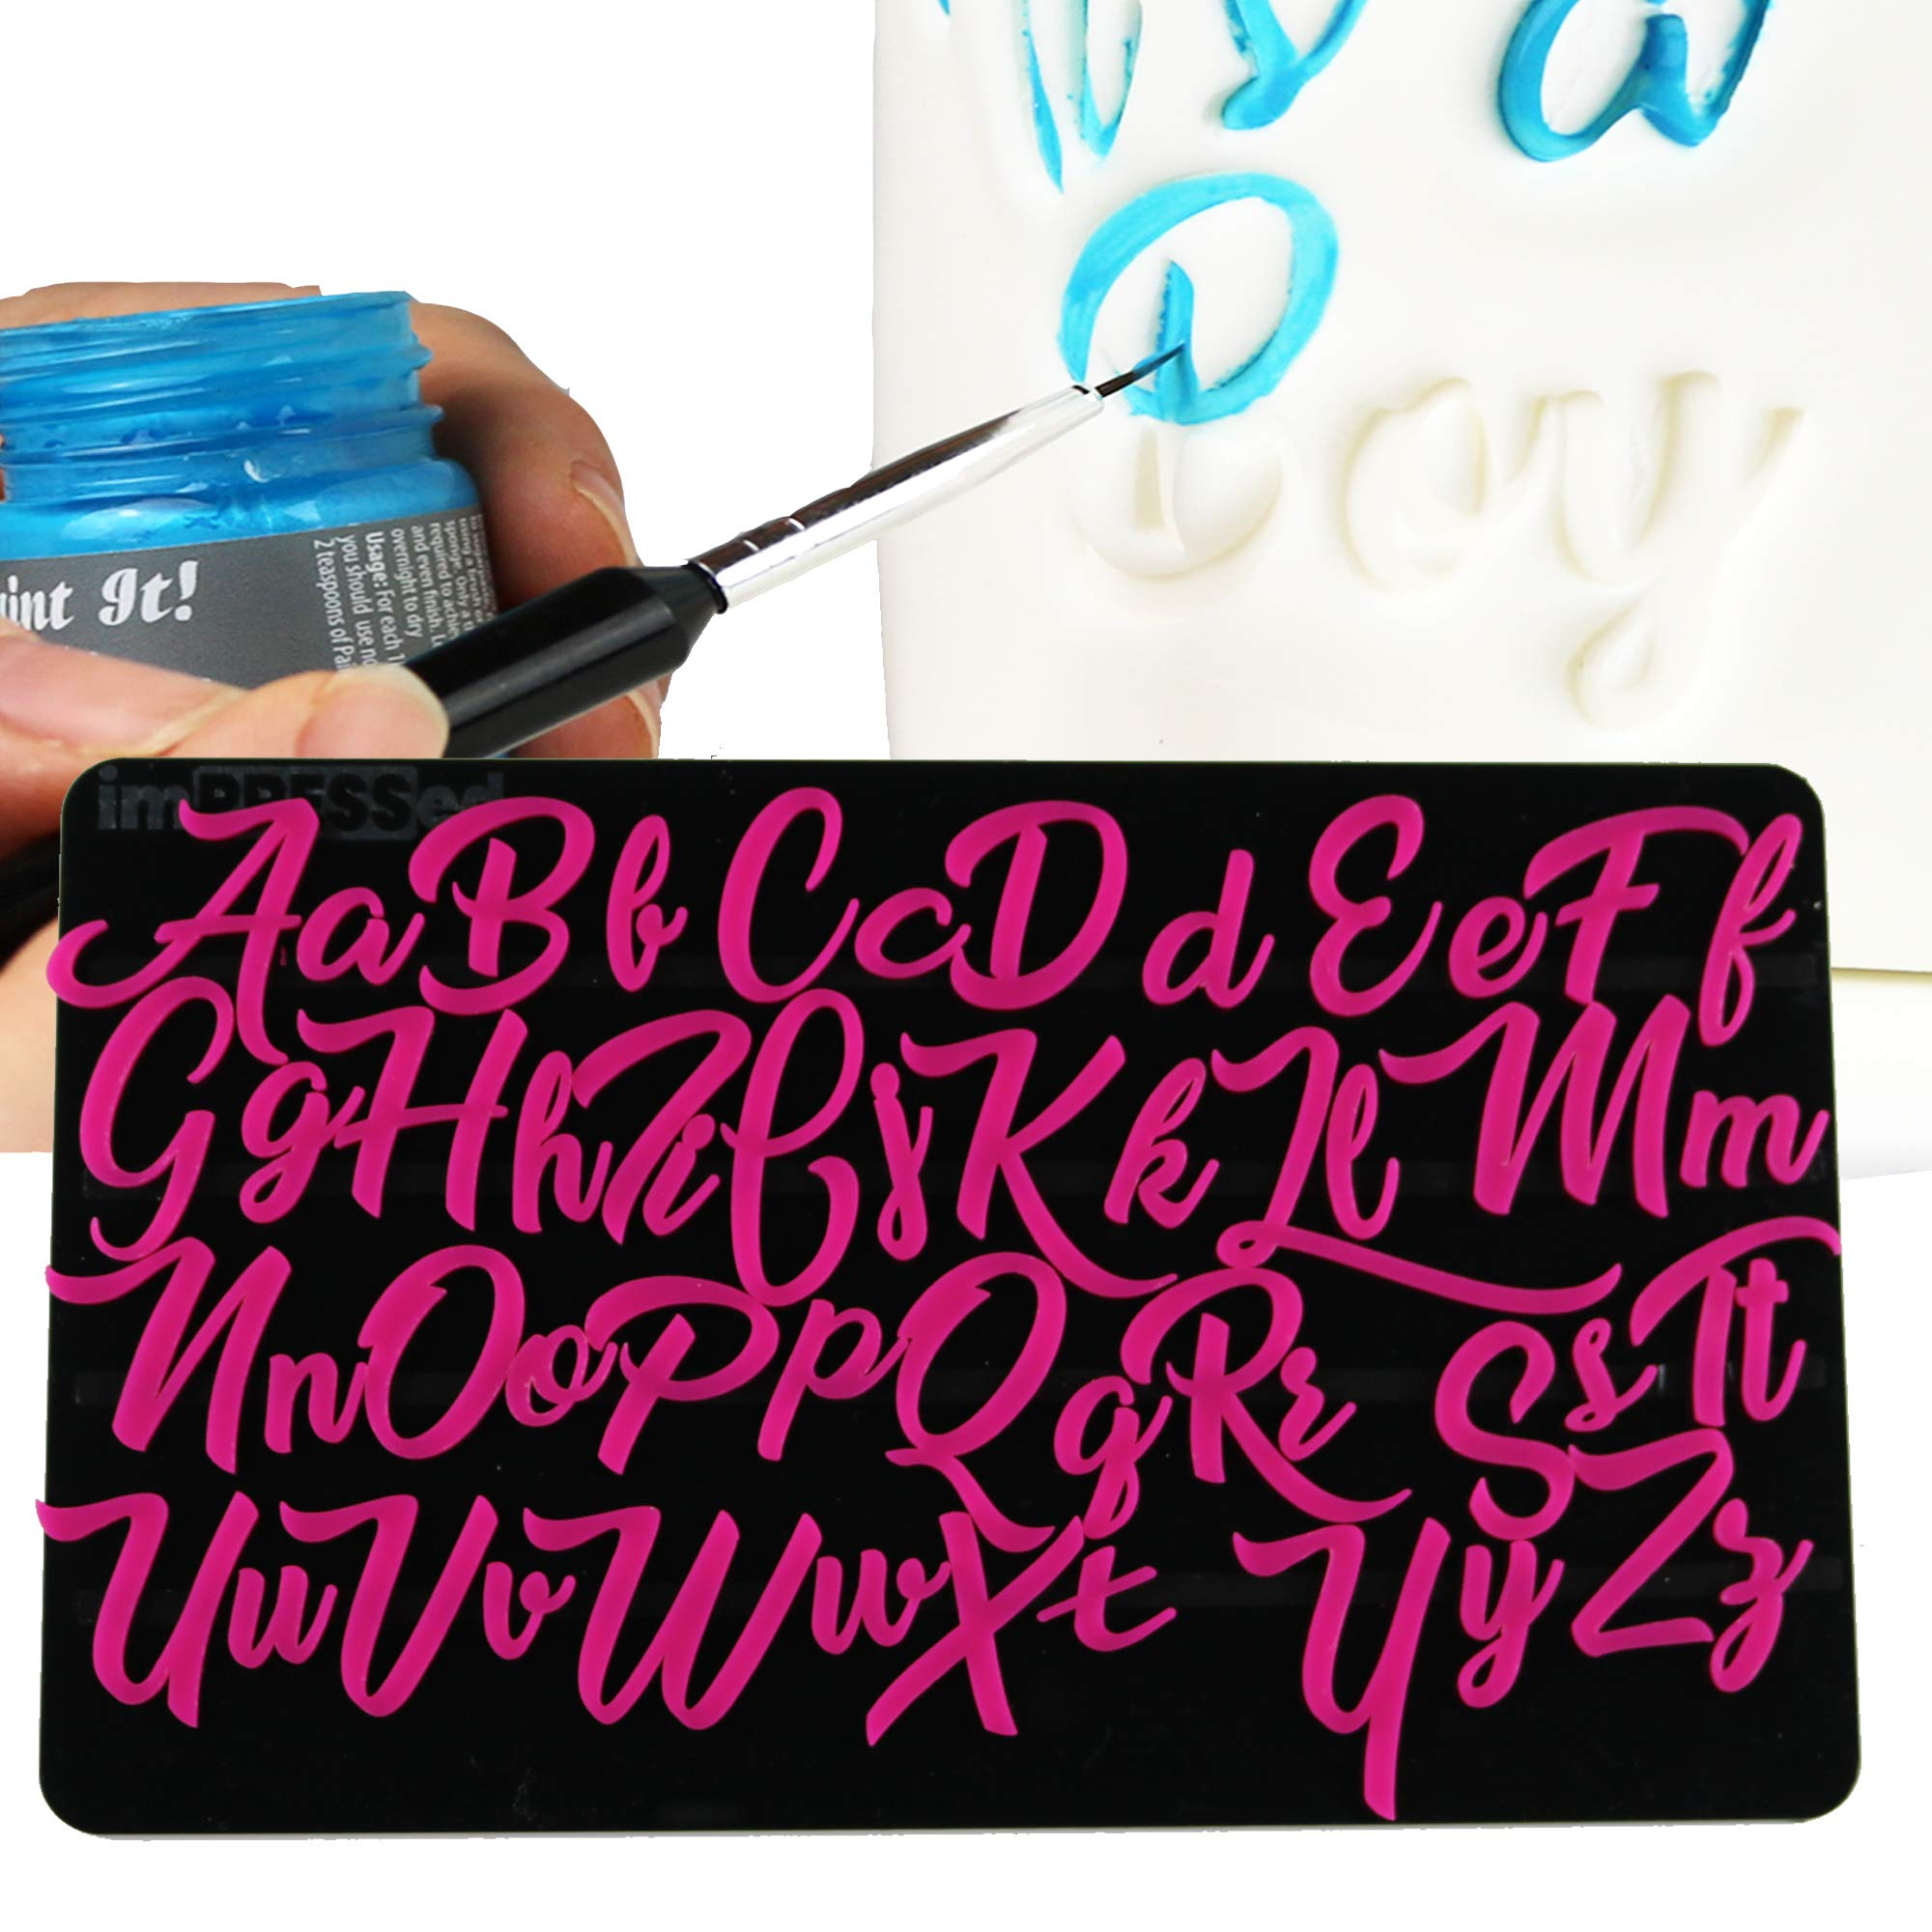 Exquisite Cake Letters - imPRESSed Lettering Embossers Cake Decorating